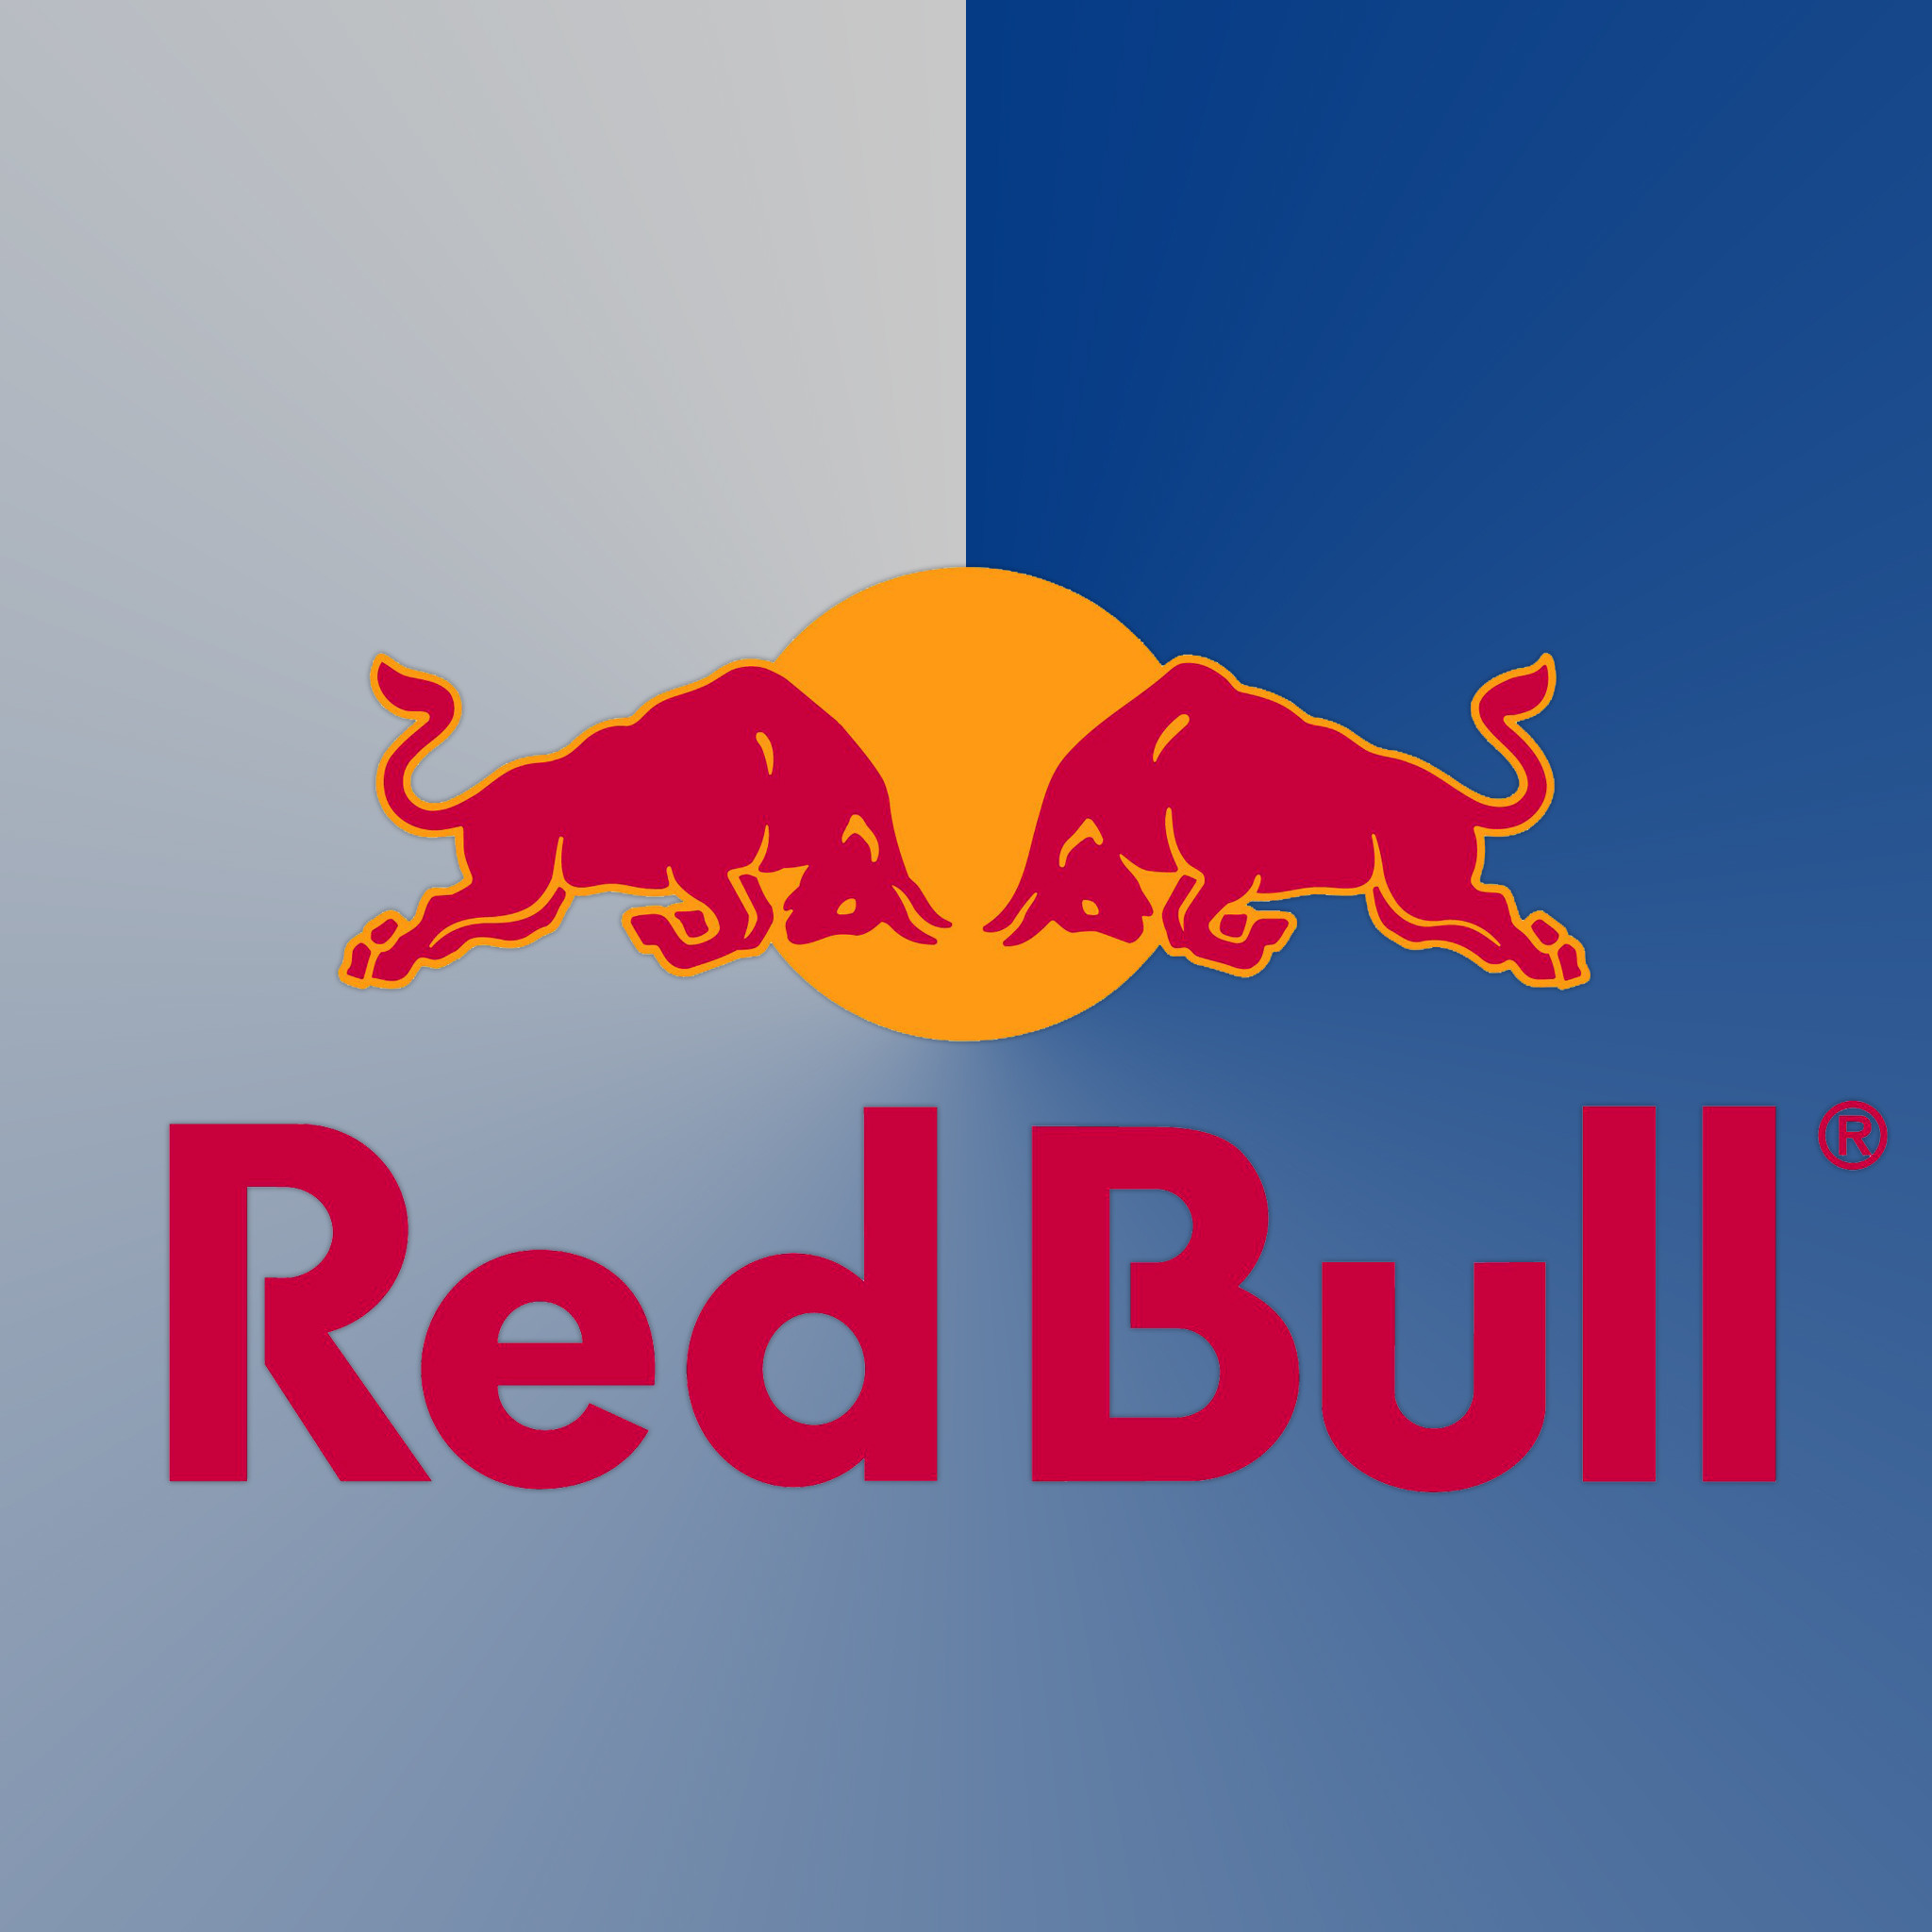 2048x2048 100% HDQ Red Bull Wallpapers | Desktop 4K High Resolution Photos